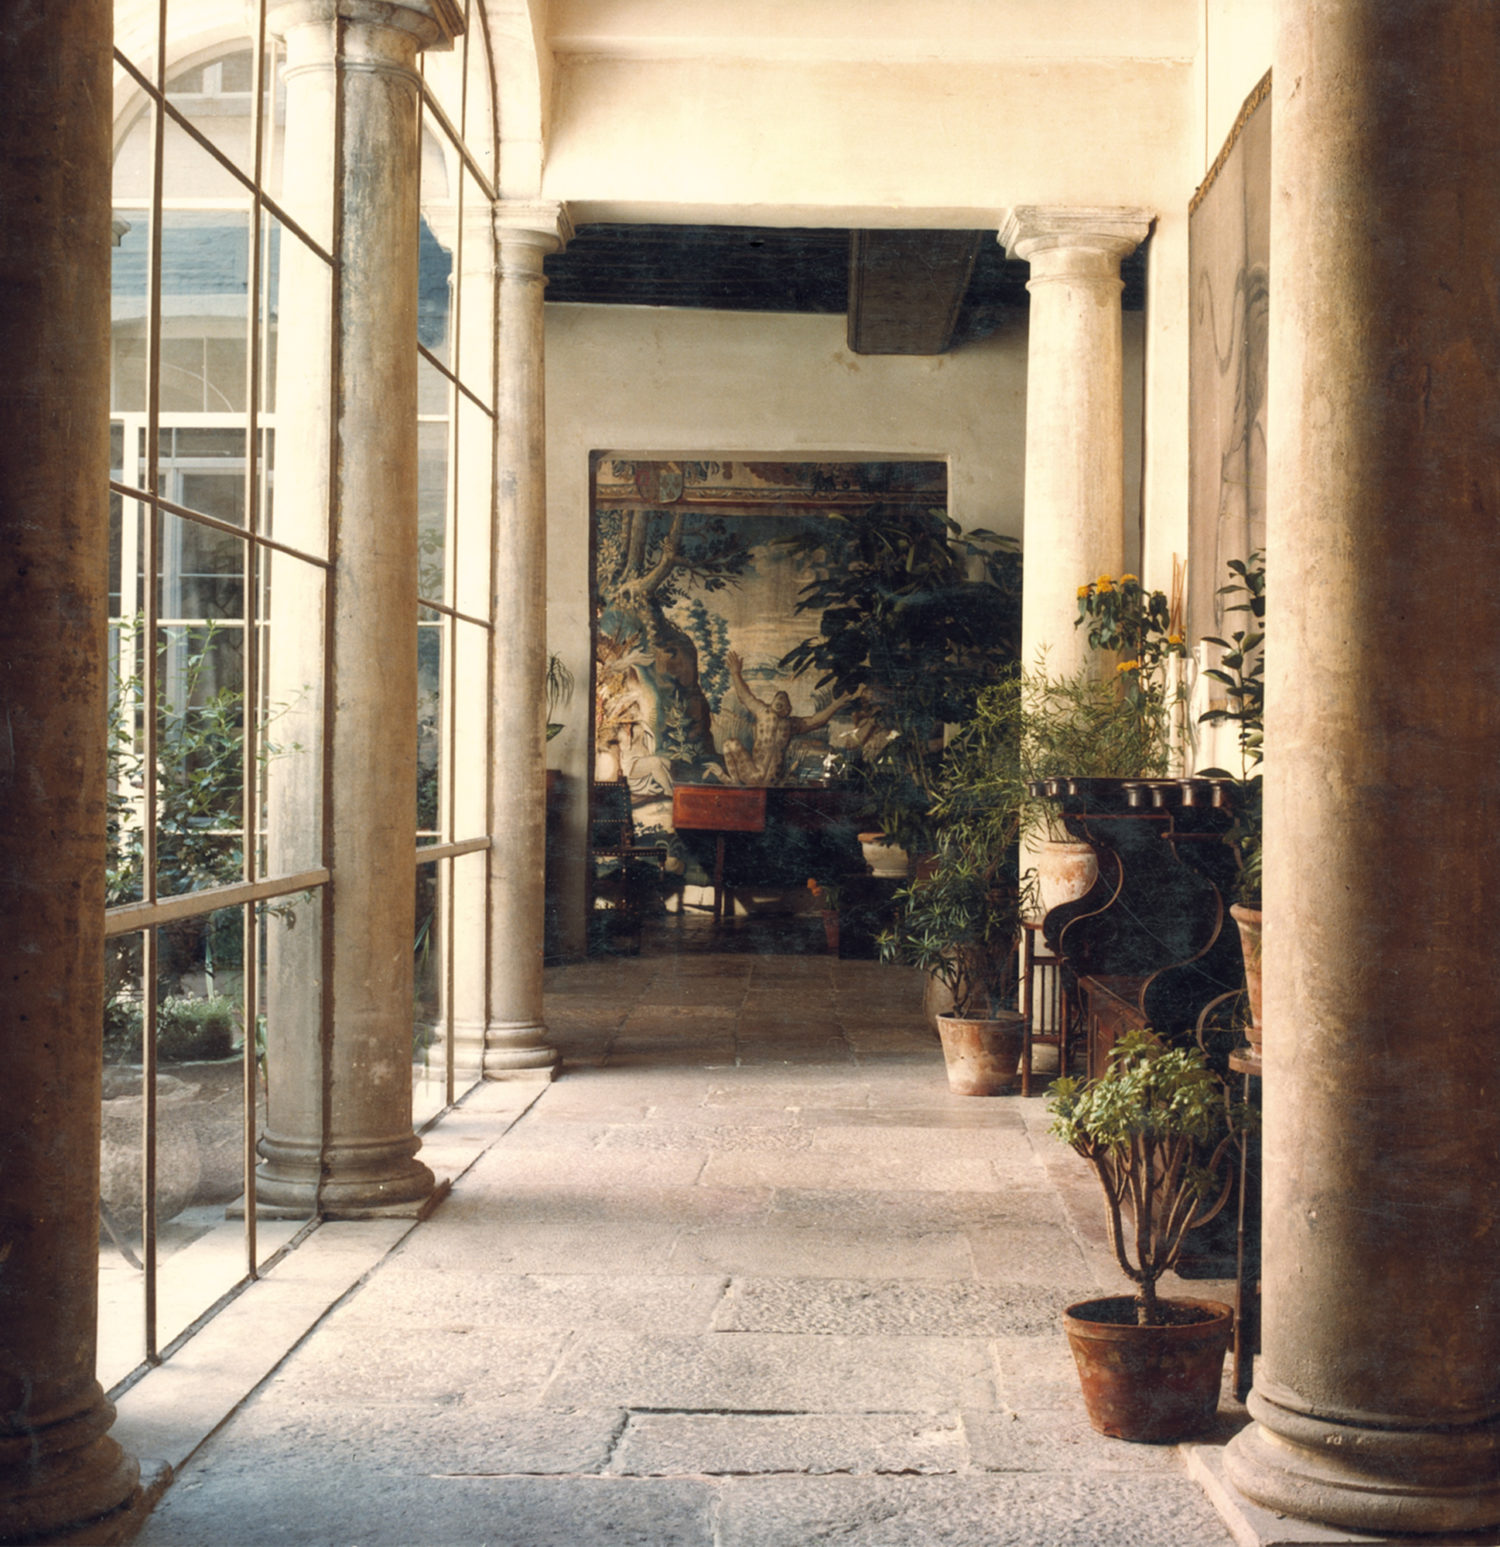 Interior view of room in the Vlaeykensgang with a central passage leading to a tapestry